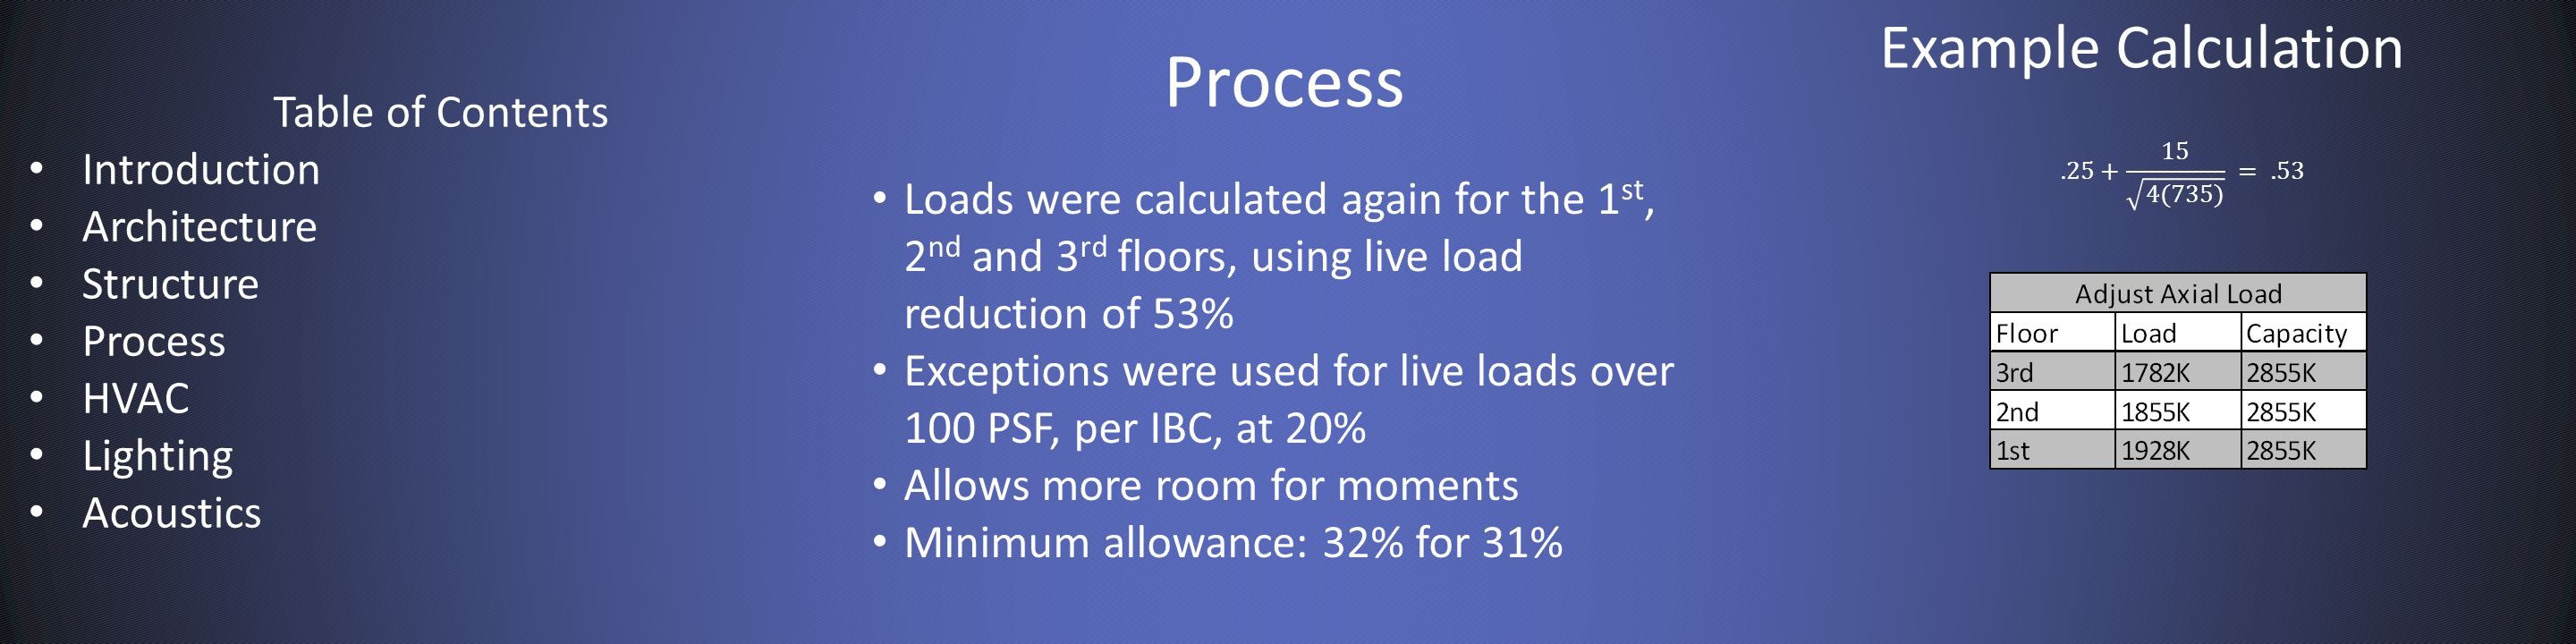 Process Loads were calculated again for the 1 st, 2 nd and 3 rd floors, using live load reduction of 53% Exceptions were used for live loads over 100 PSF, per IBC, at 20% Allows more room for moments Minimum allowance: 32% for 31% Table of Contents Introduction Architecture Structure Process HVAC Lighting Acoustics Example Calculation